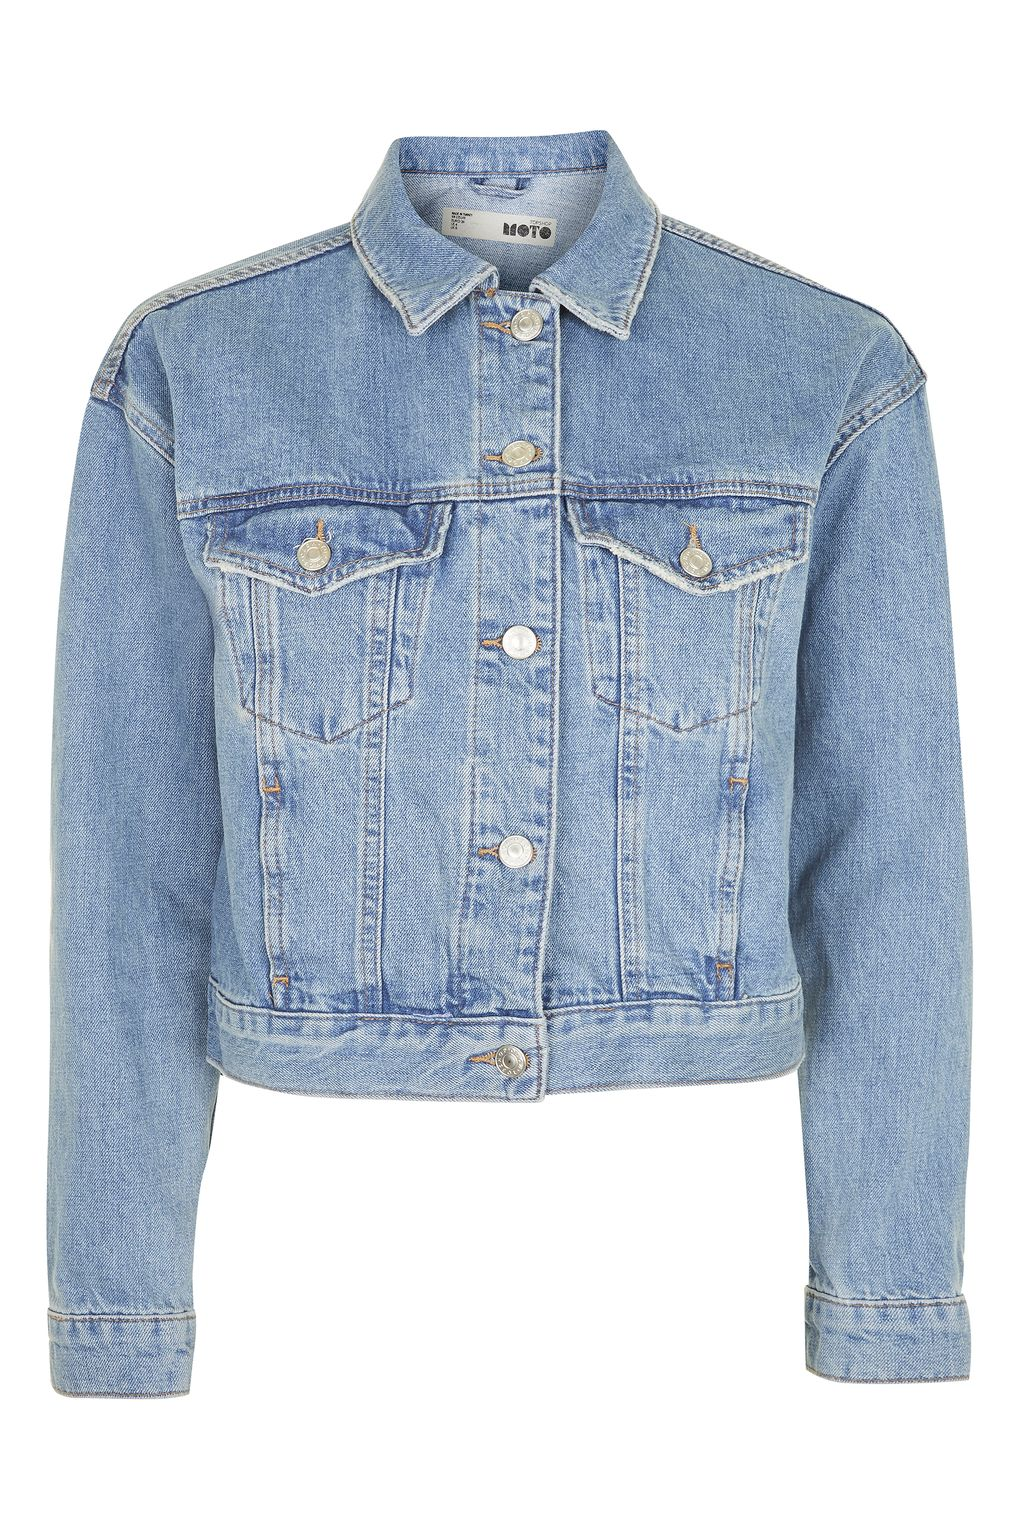 topshop denim .jpg